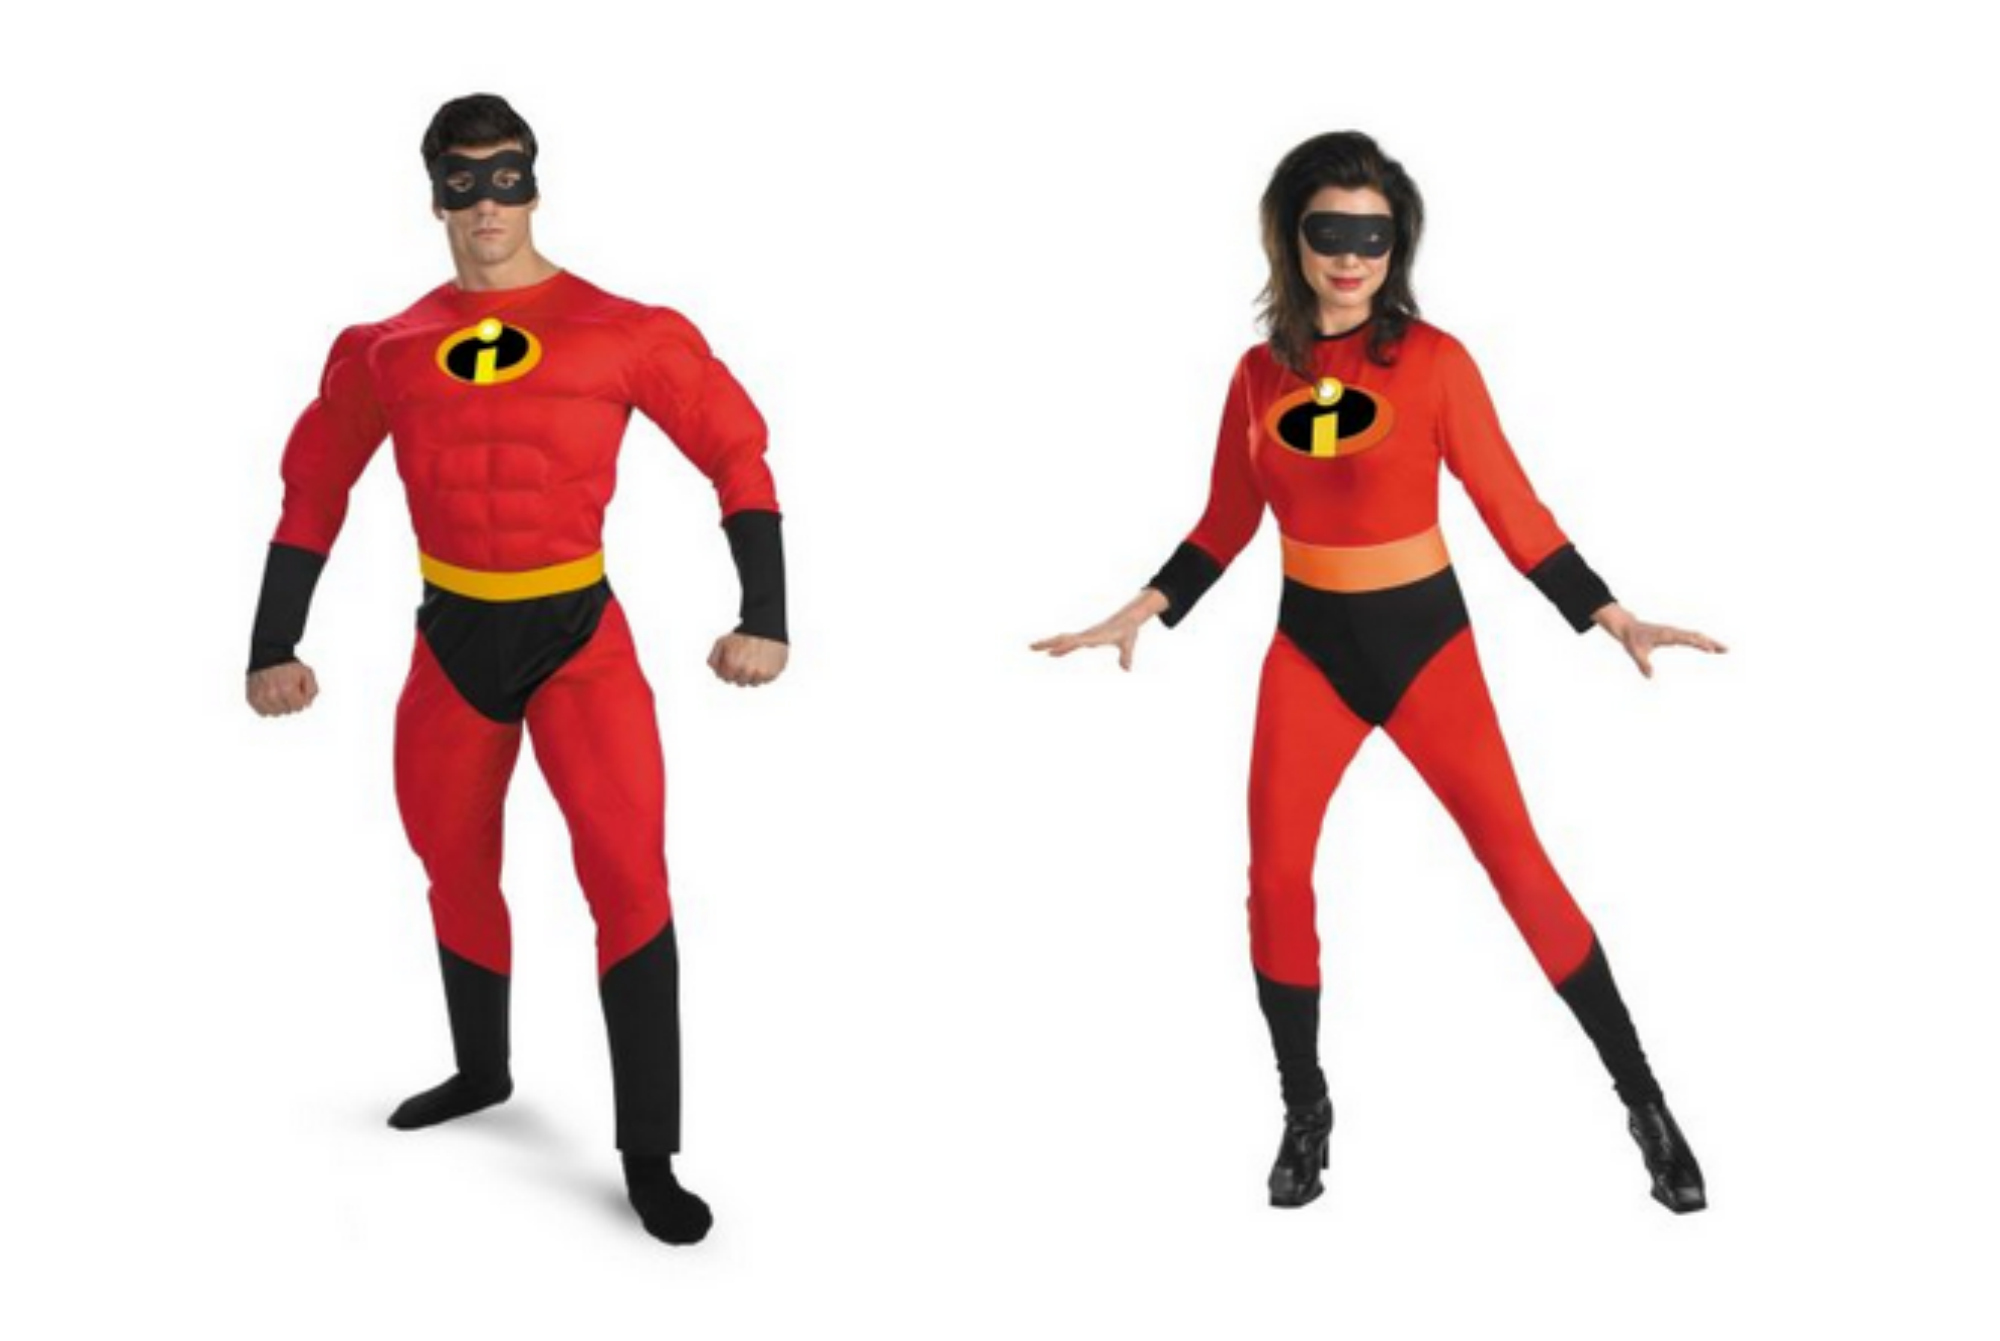 Mr. and Mrs. Incredible from The Incredibles movie Halloween costume